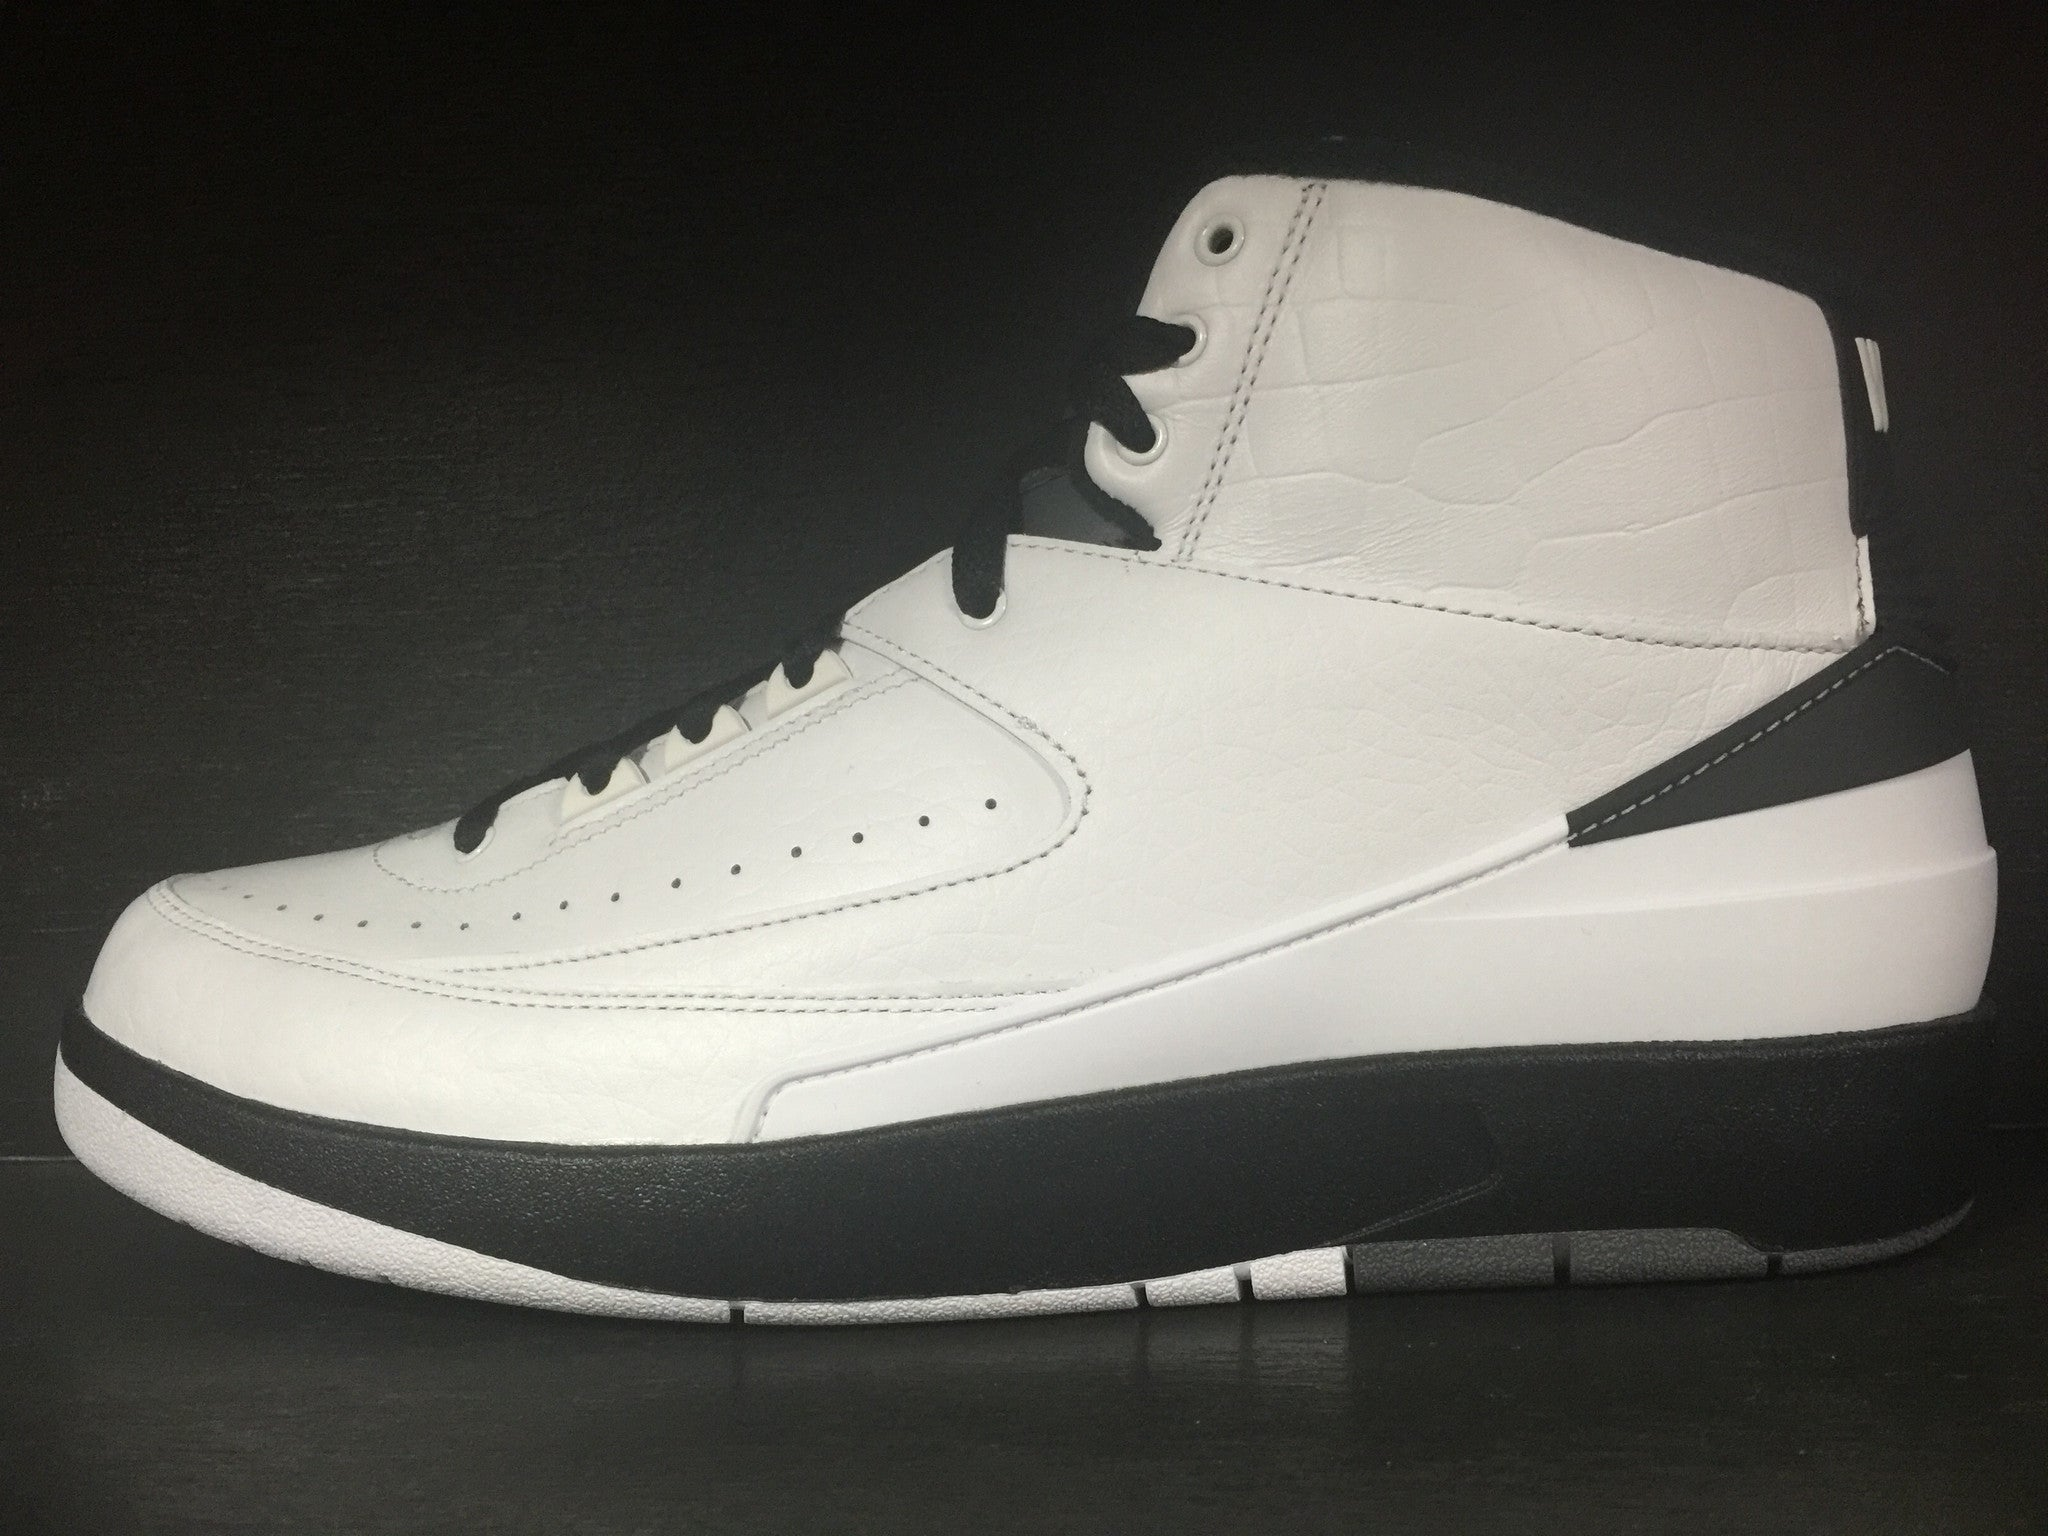 Air Jordan 2 Retro 'Wing It'